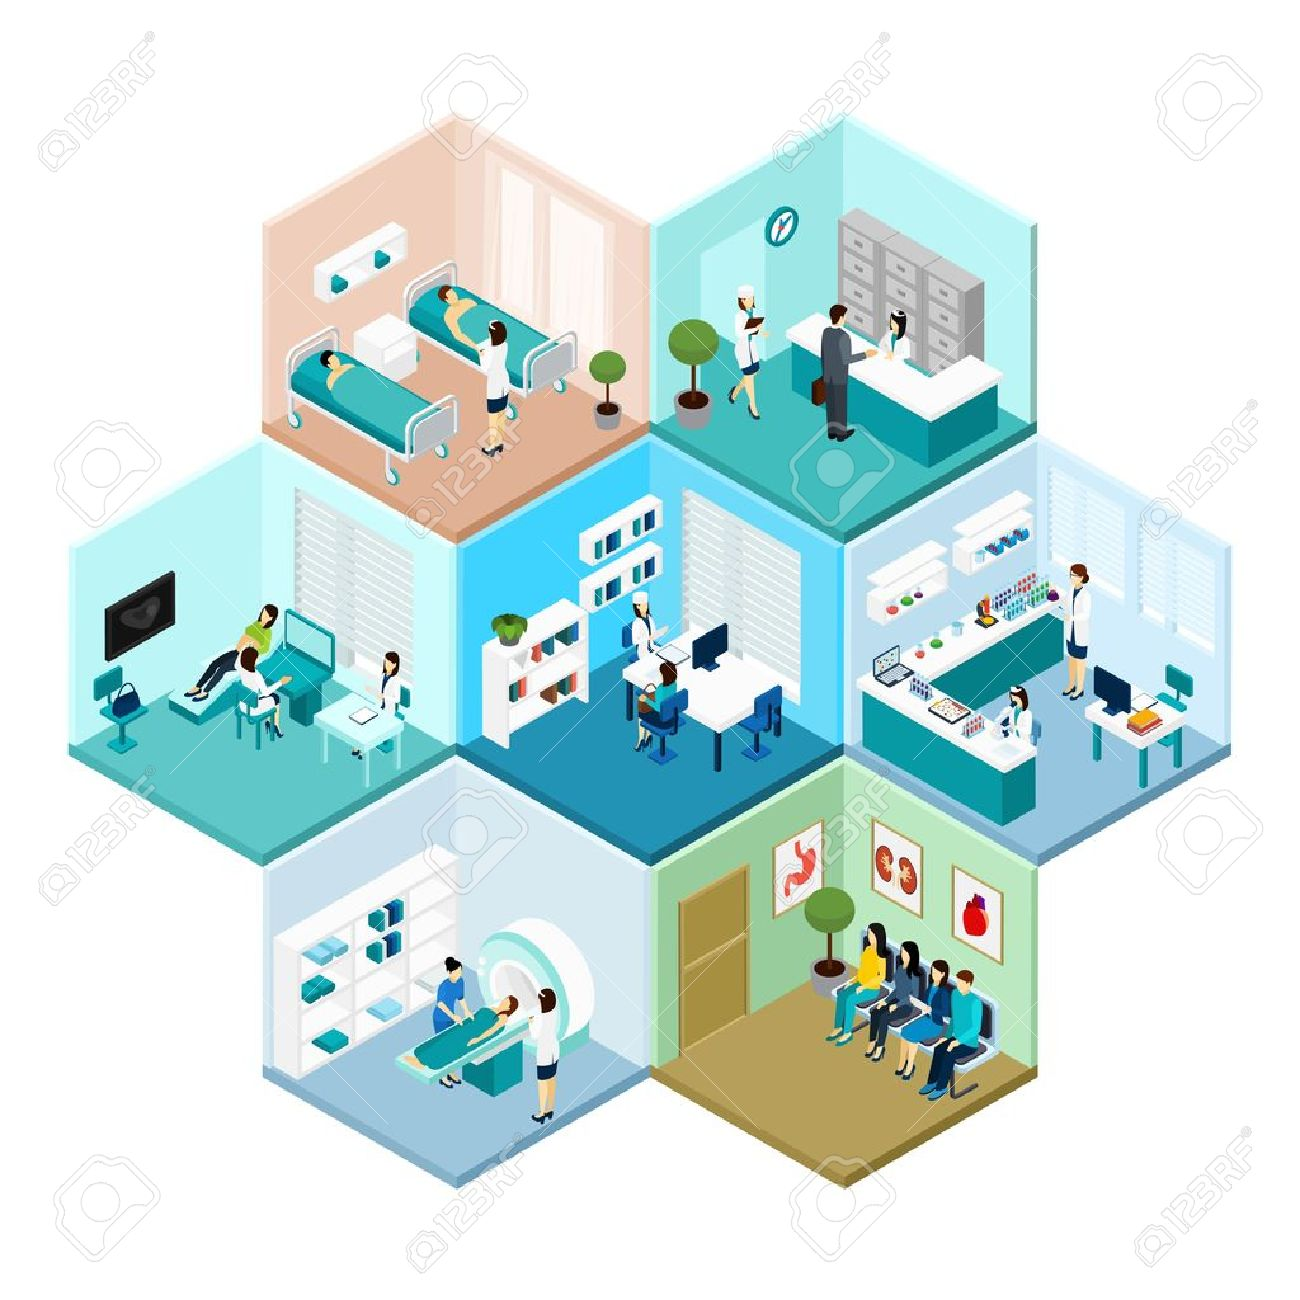 Hospital reception examination and waiting rooms interior tessellated honeycomb hexagonal isometric composition pattern abstract vector isolated illustration Stock Vector - 54765838